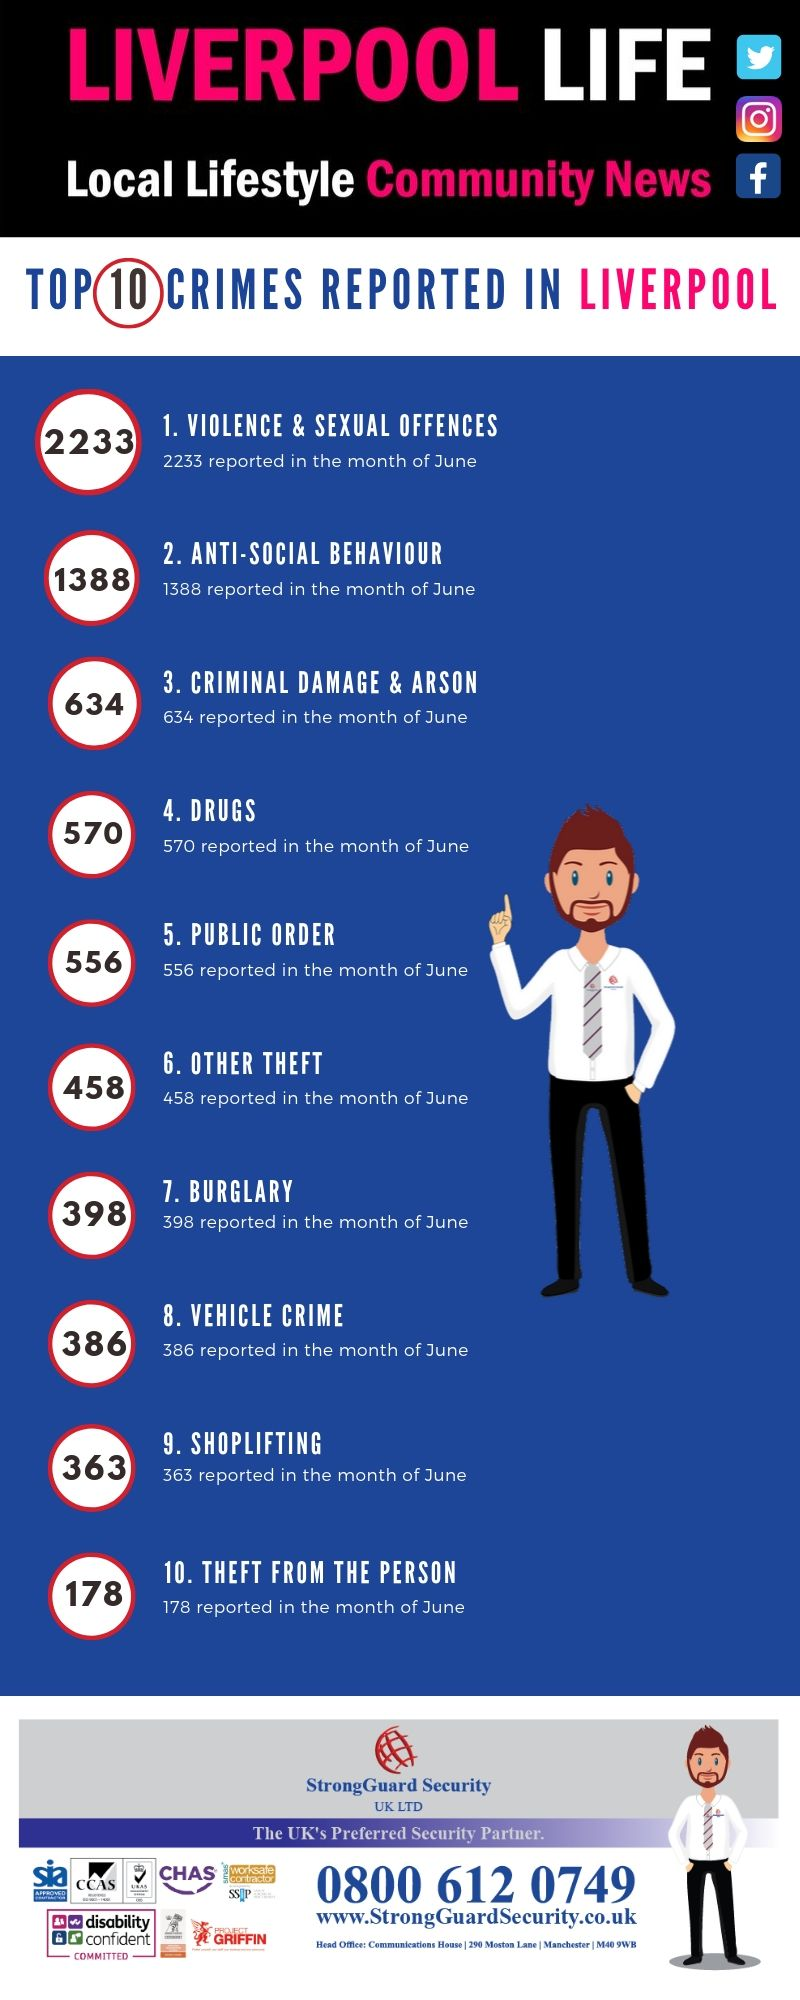 10 MOST REPORTED CRIMES IN LIVERPOOL - JUNE 2019